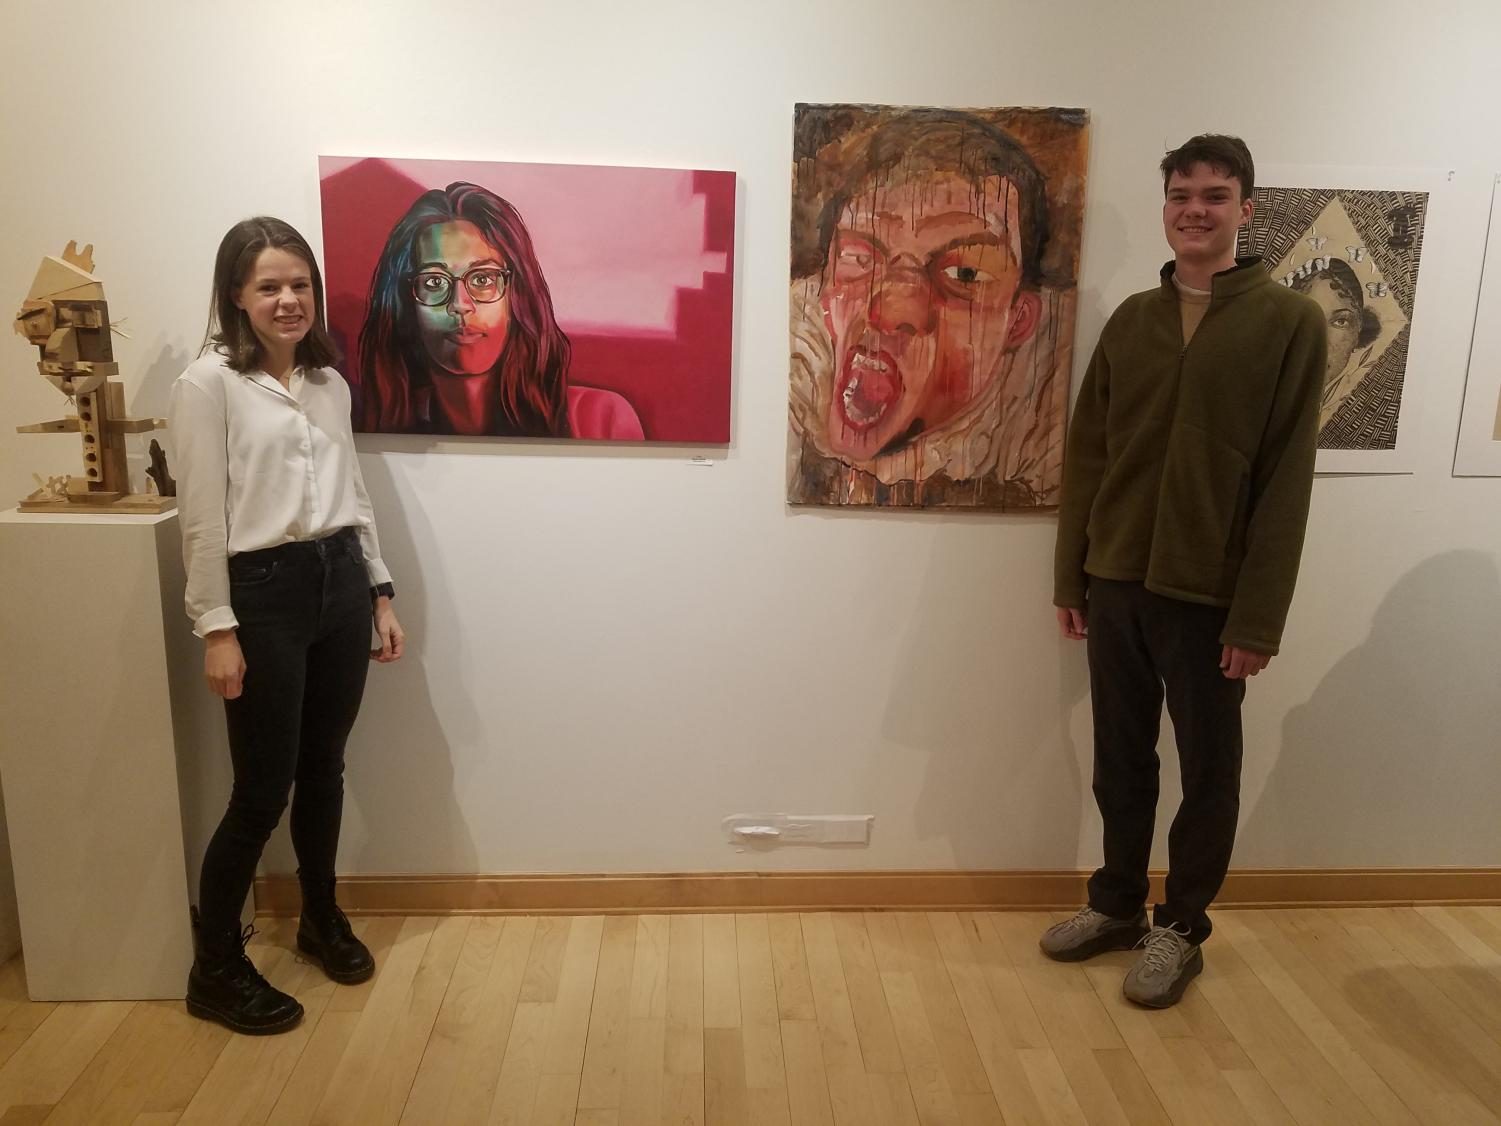 From left, Morgan Sample and Henry Gutch in front of their art.